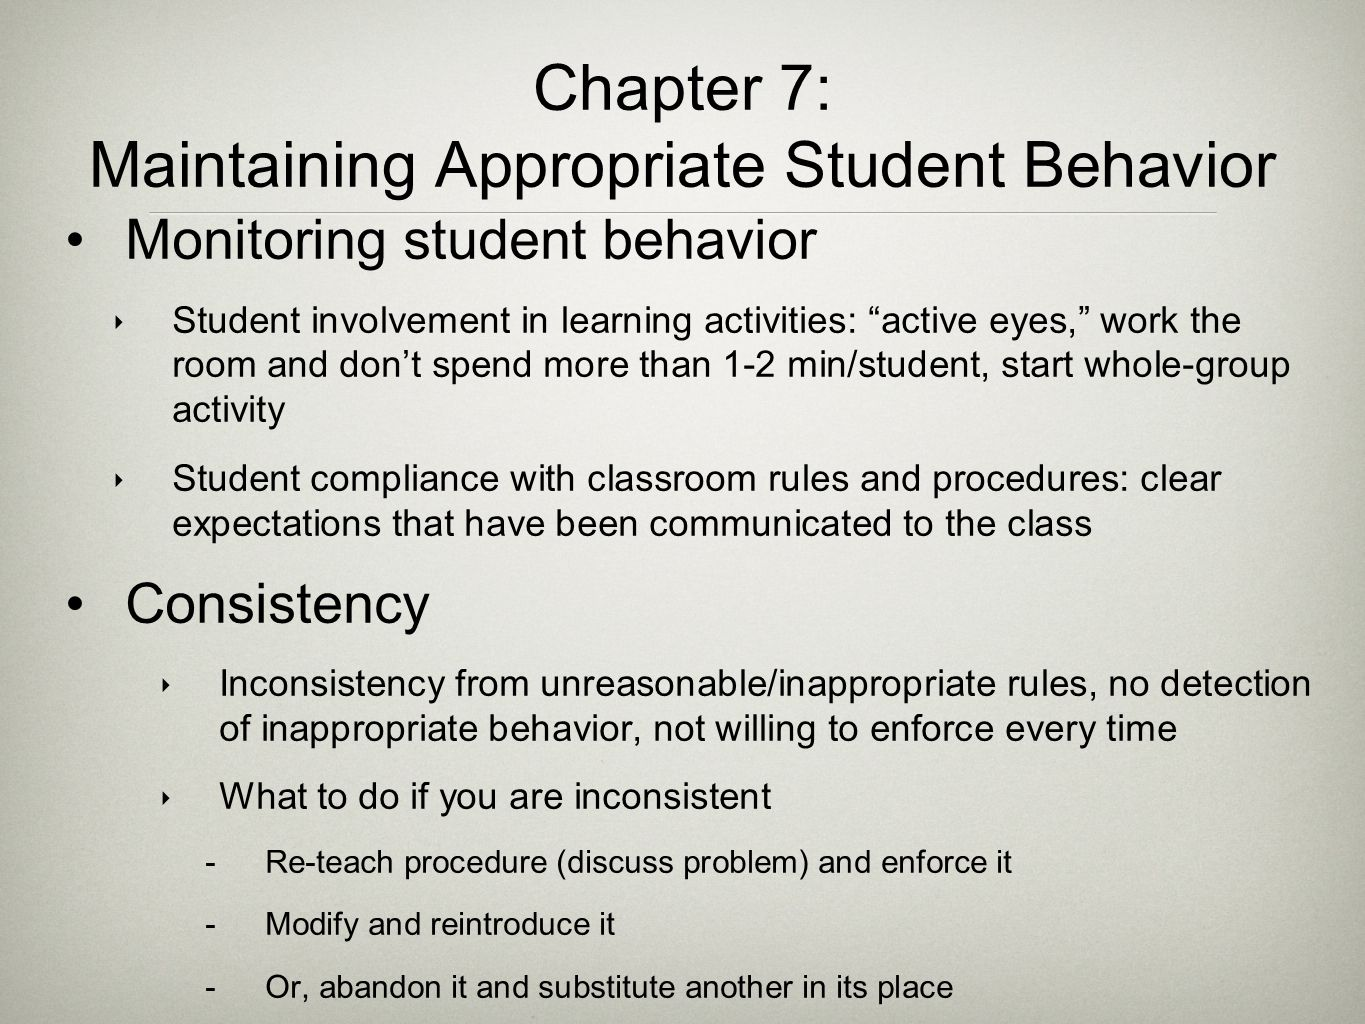 Chapter 7: Maintaining Appropriate Student Behavior